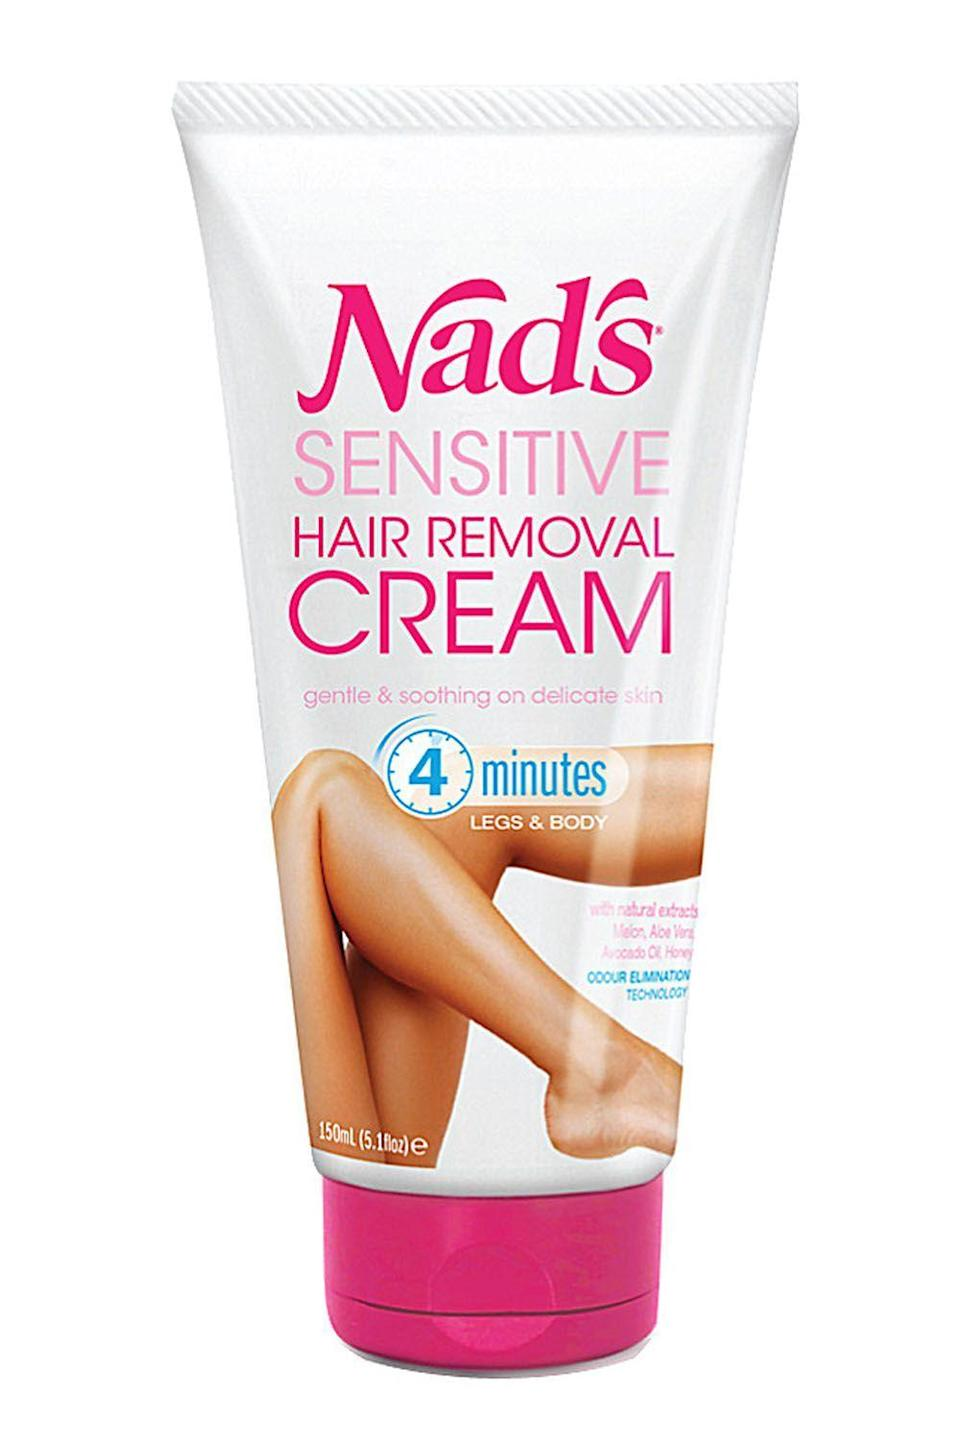 """<p><strong>Nad's</strong></p><p>amazon.com</p><p><strong>$5.79</strong></p><p><a href=""""https://www.amazon.com/dp/B01LW9BC90?tag=syn-yahoo-20&ascsubtag=%5Bartid%7C10049.g.28433811%5Bsrc%7Cyahoo-us"""" rel=""""nofollow noopener"""" target=""""_blank"""" data-ylk=""""slk:Shop Now"""" class=""""link rapid-noclick-resp"""">Shop Now</a></p><p>Your <a href=""""https://www.cosmopolitan.com/style-beauty/beauty/advice/g2921/bikini-area-beauty-products/"""" rel=""""nofollow noopener"""" target=""""_blank"""" data-ylk=""""slk:bikini area"""" class=""""link rapid-noclick-resp"""">bikini area</a> is prone to irritation (as you already know from being a living, breathing human), so if you're going to use a depilatory down there—it has to be packed with hydrating and soothing ingredients, like Nad's formula here. It's made with melon extract, aloe vera, avocado oil, and honey to<strong> help prevent your sensitive bikini-line skin from freaking out and becoming irritated.</strong></p>"""